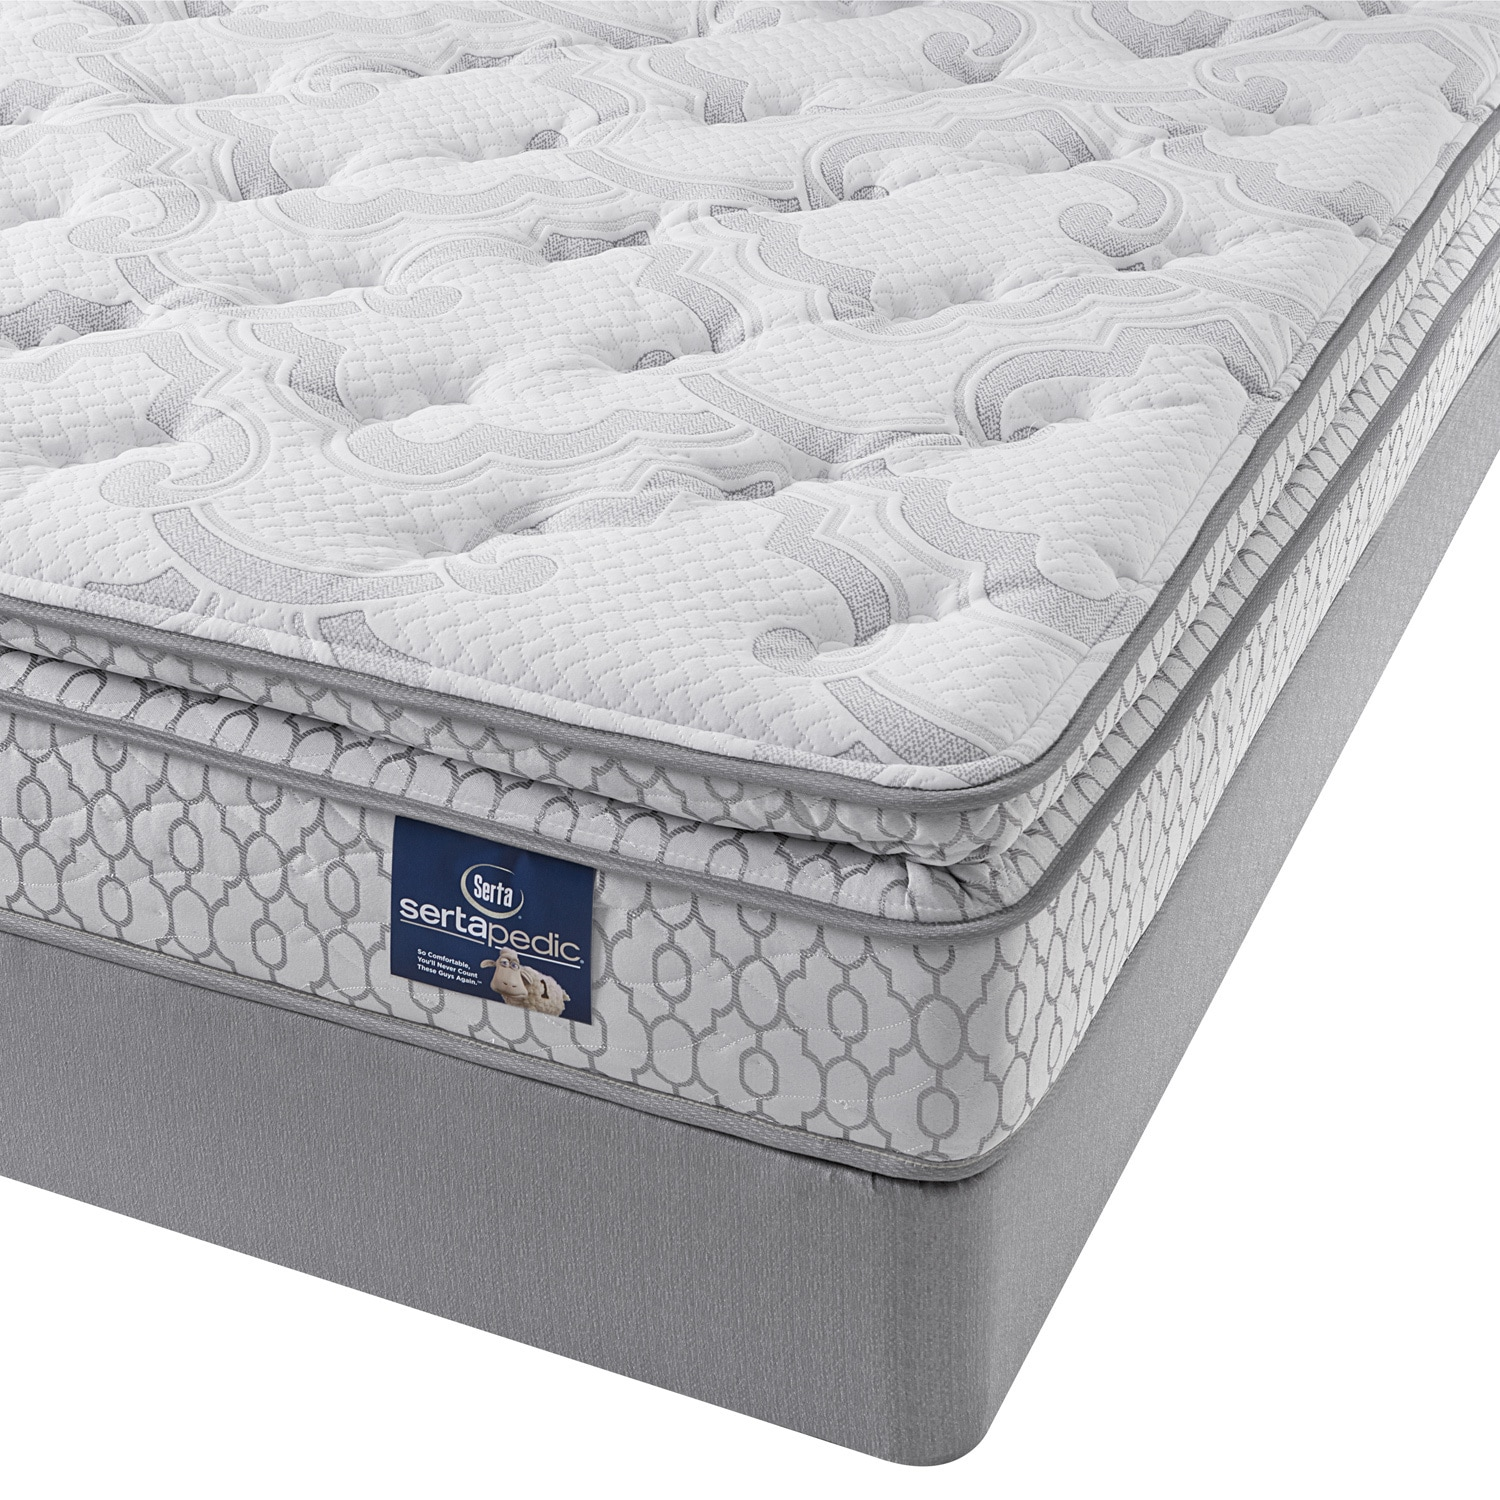 Shop Serta Extravagant Pillow Top Full Size Mattress Set White